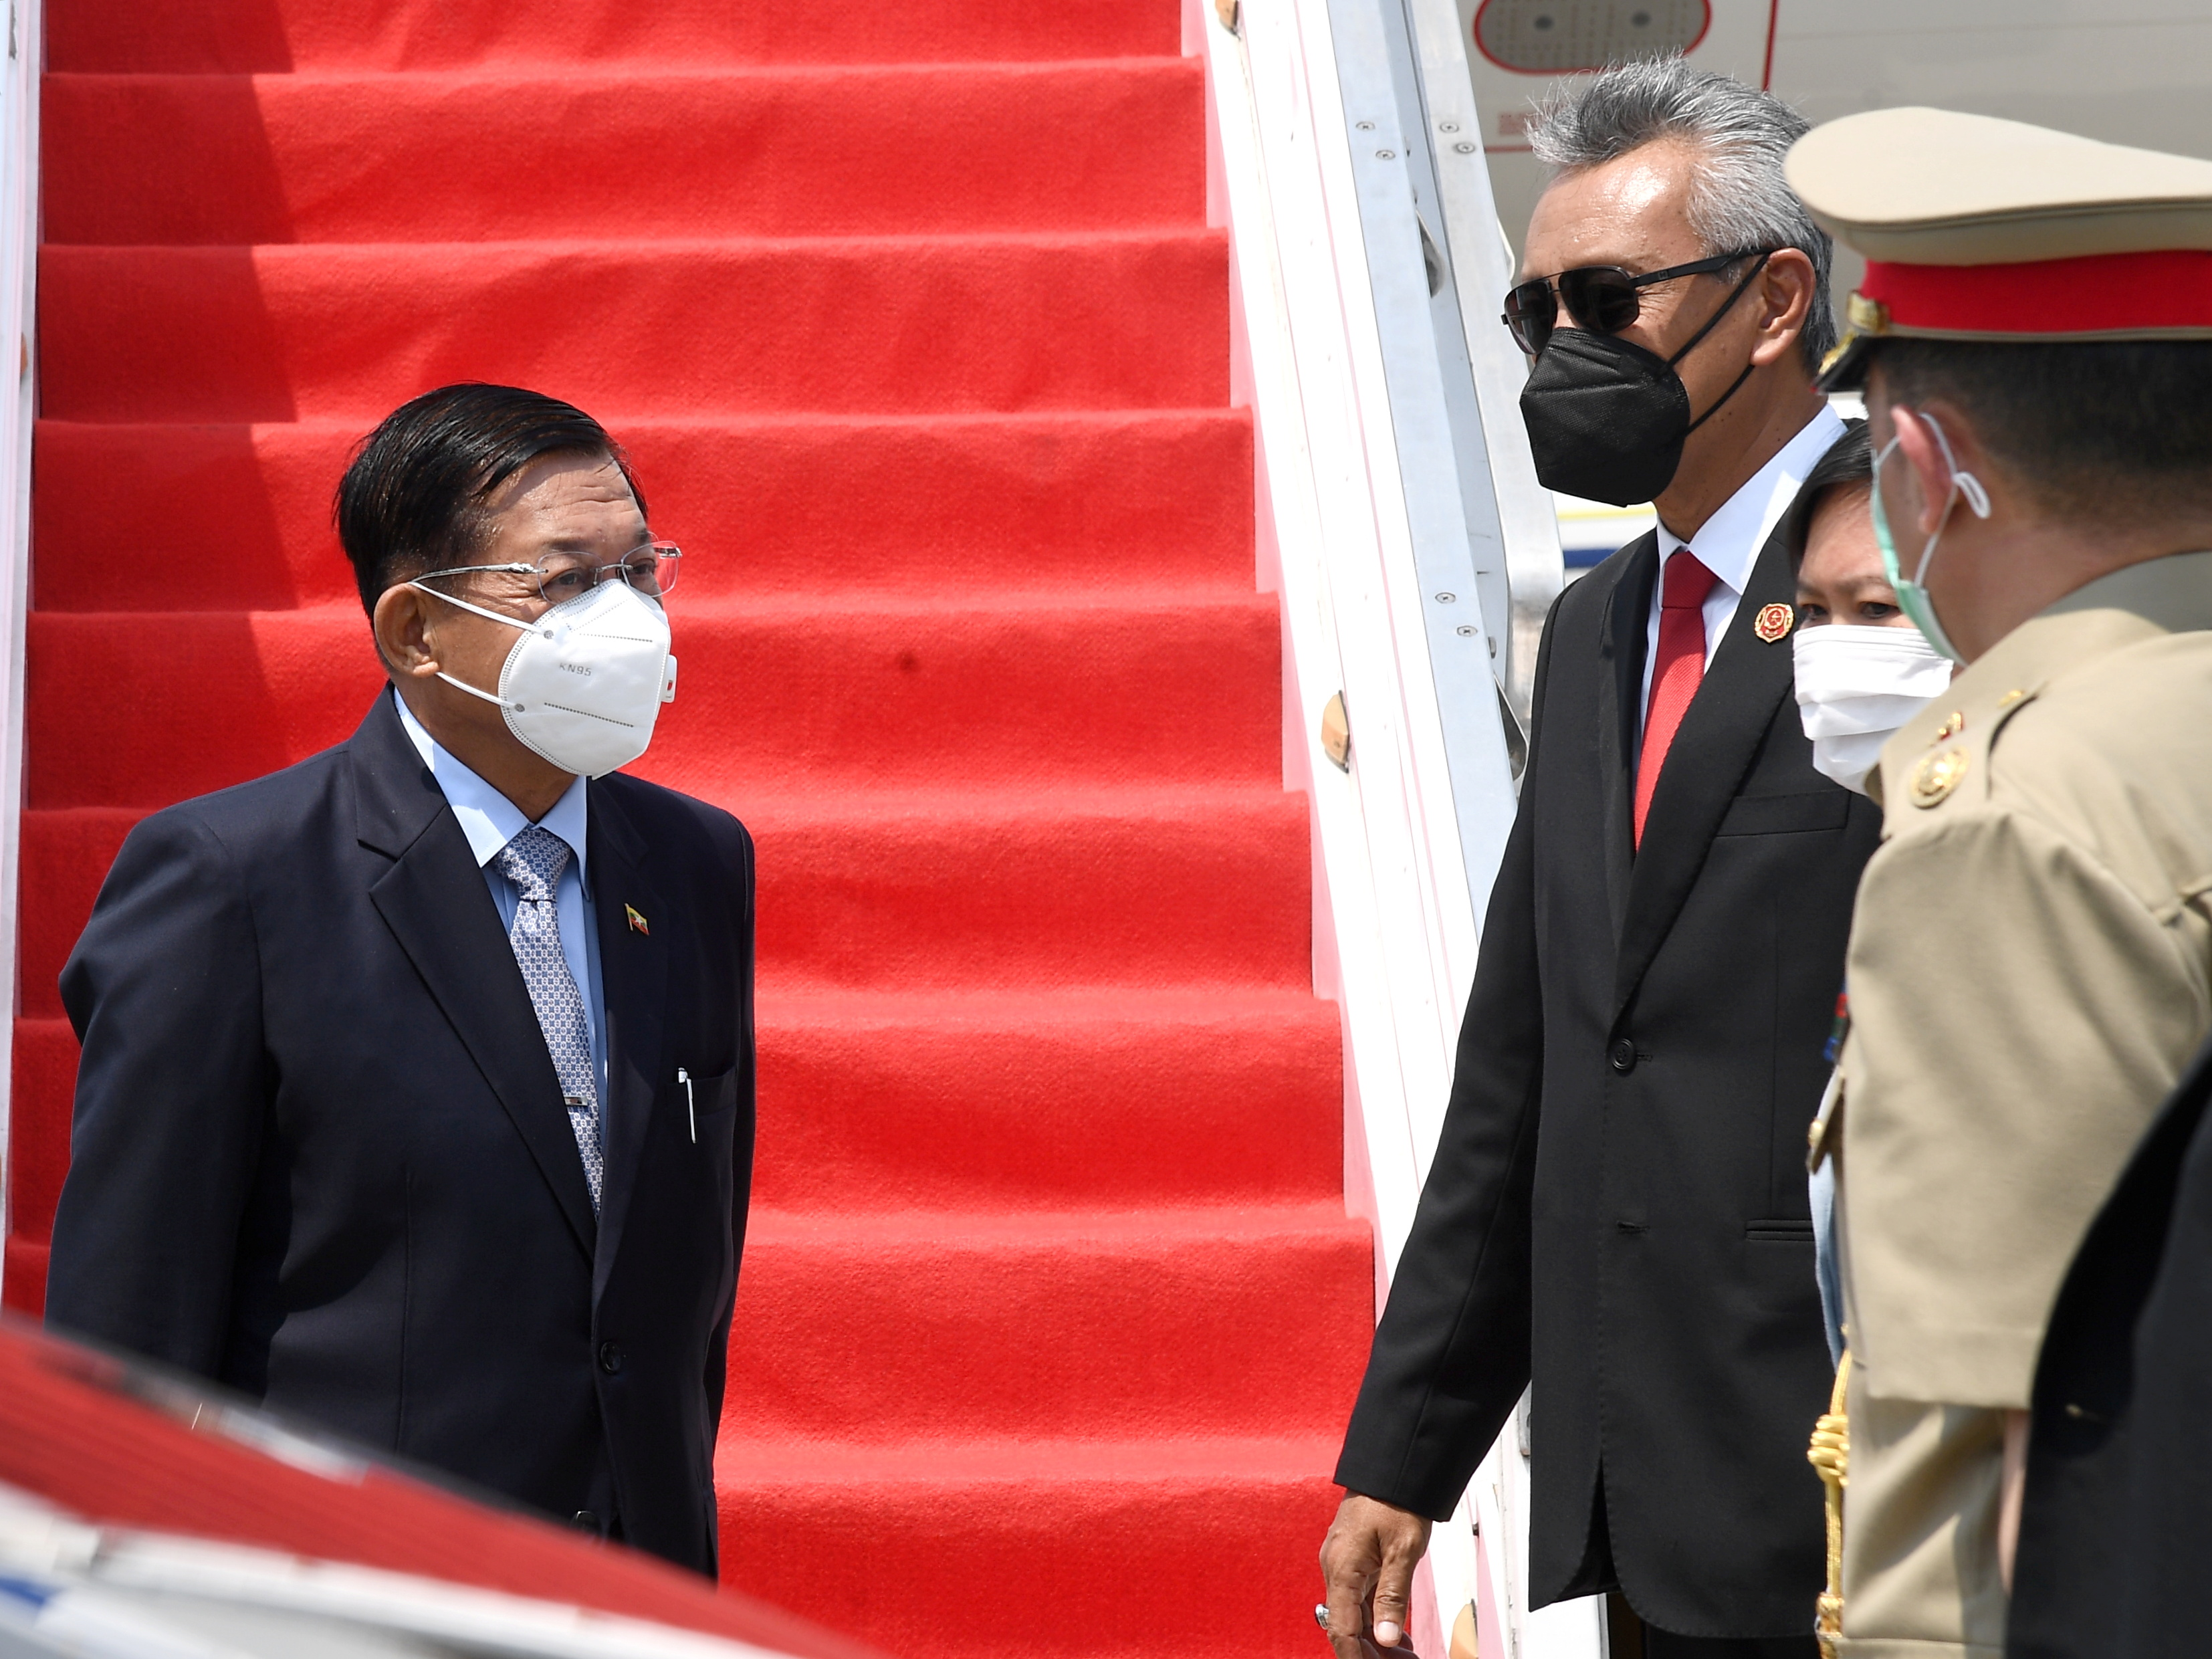 Myanmar's junta chief Senior General Min Aung Hlaing (L) is seen upon his arrival before the ASEAN leaders' summit, at the Soekarno Hatta International airport in Tangerang, on the outskirts of Jakarta, Indonesia, April 24, 2021. Courtesy of Rusman/Indonesian Presidential Palace/Handout via REUTERS